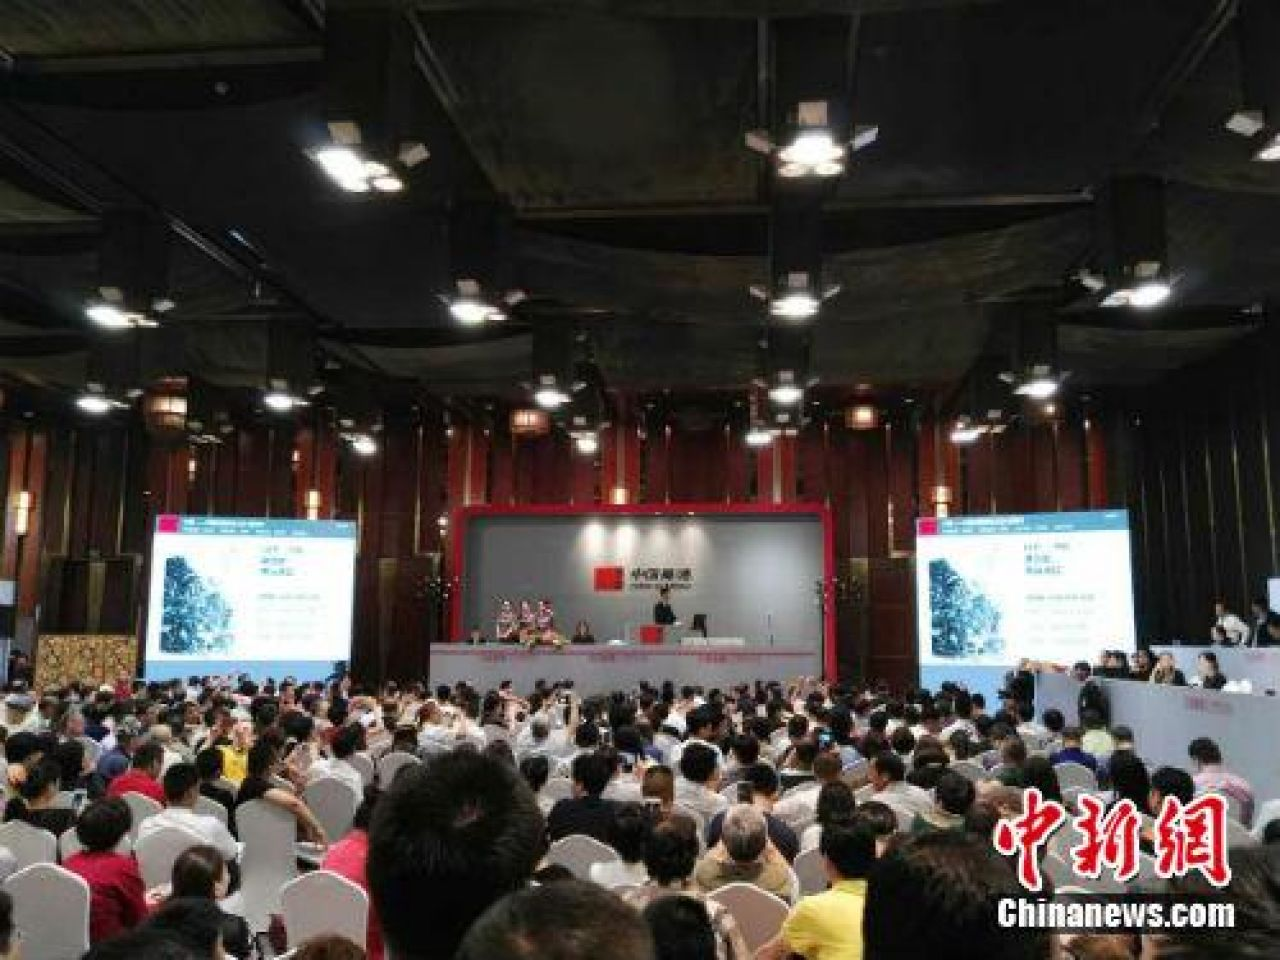 Traditional Chinese landscape painting sold at $50 million